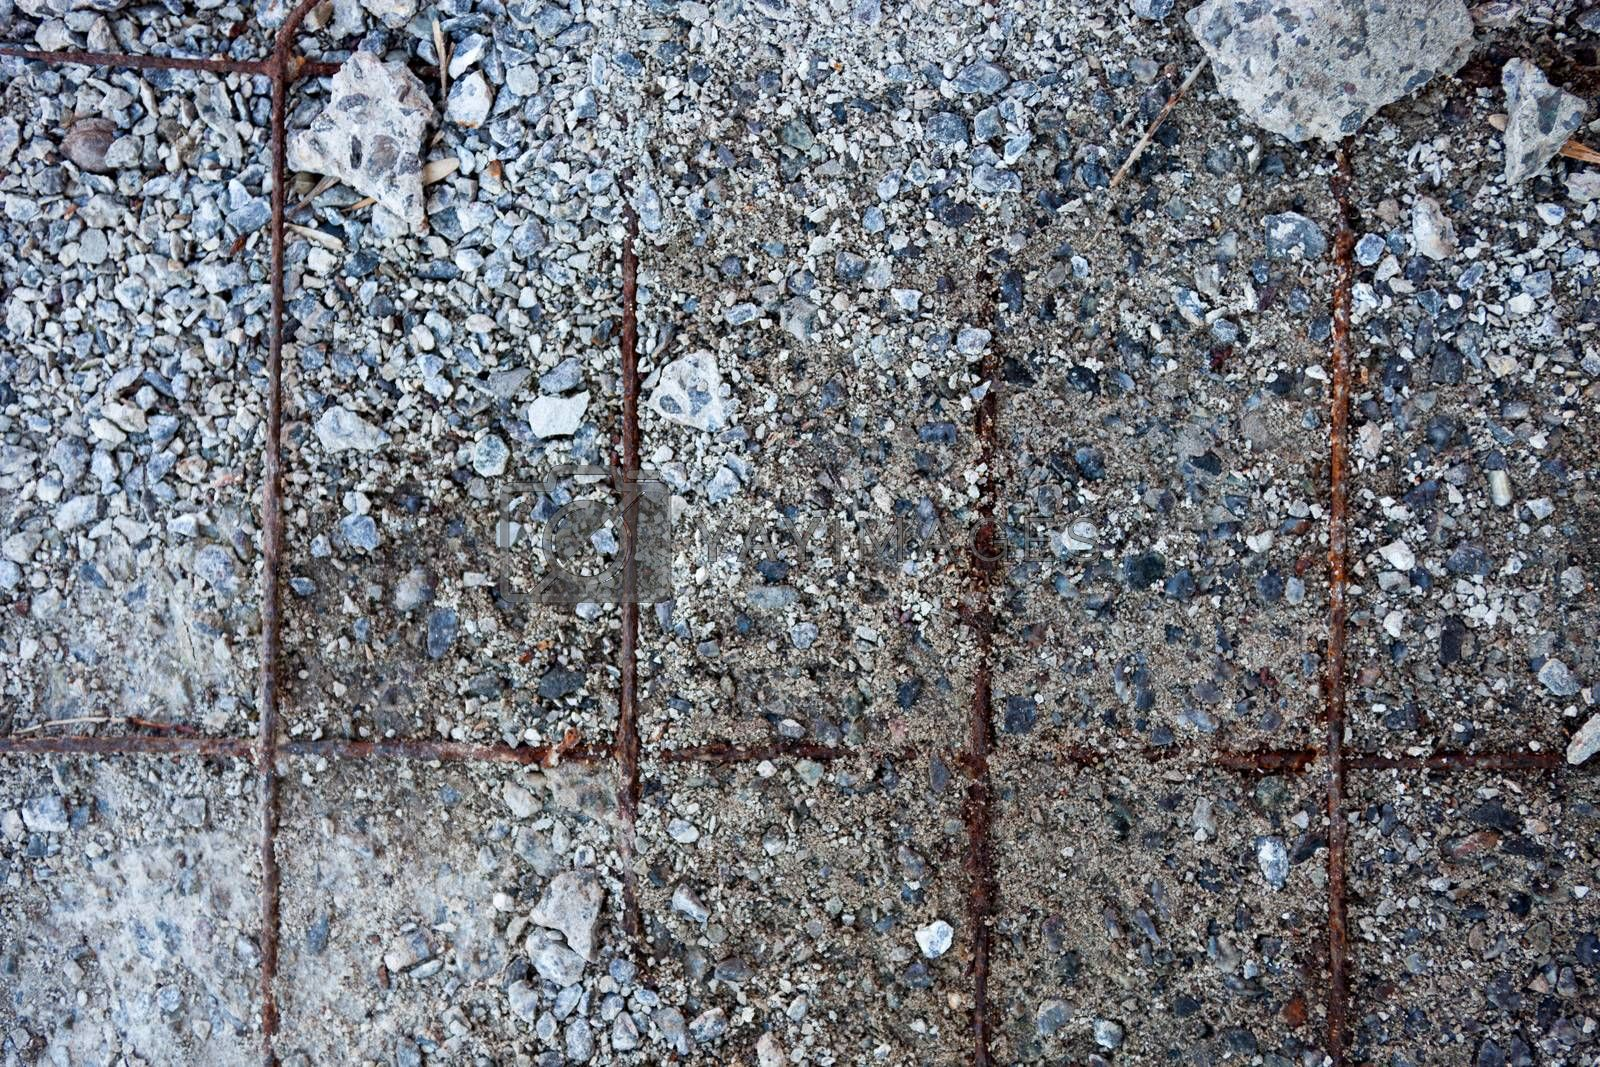 Grey concrete surface with visible reinforcement and crushed sto by rootstocks